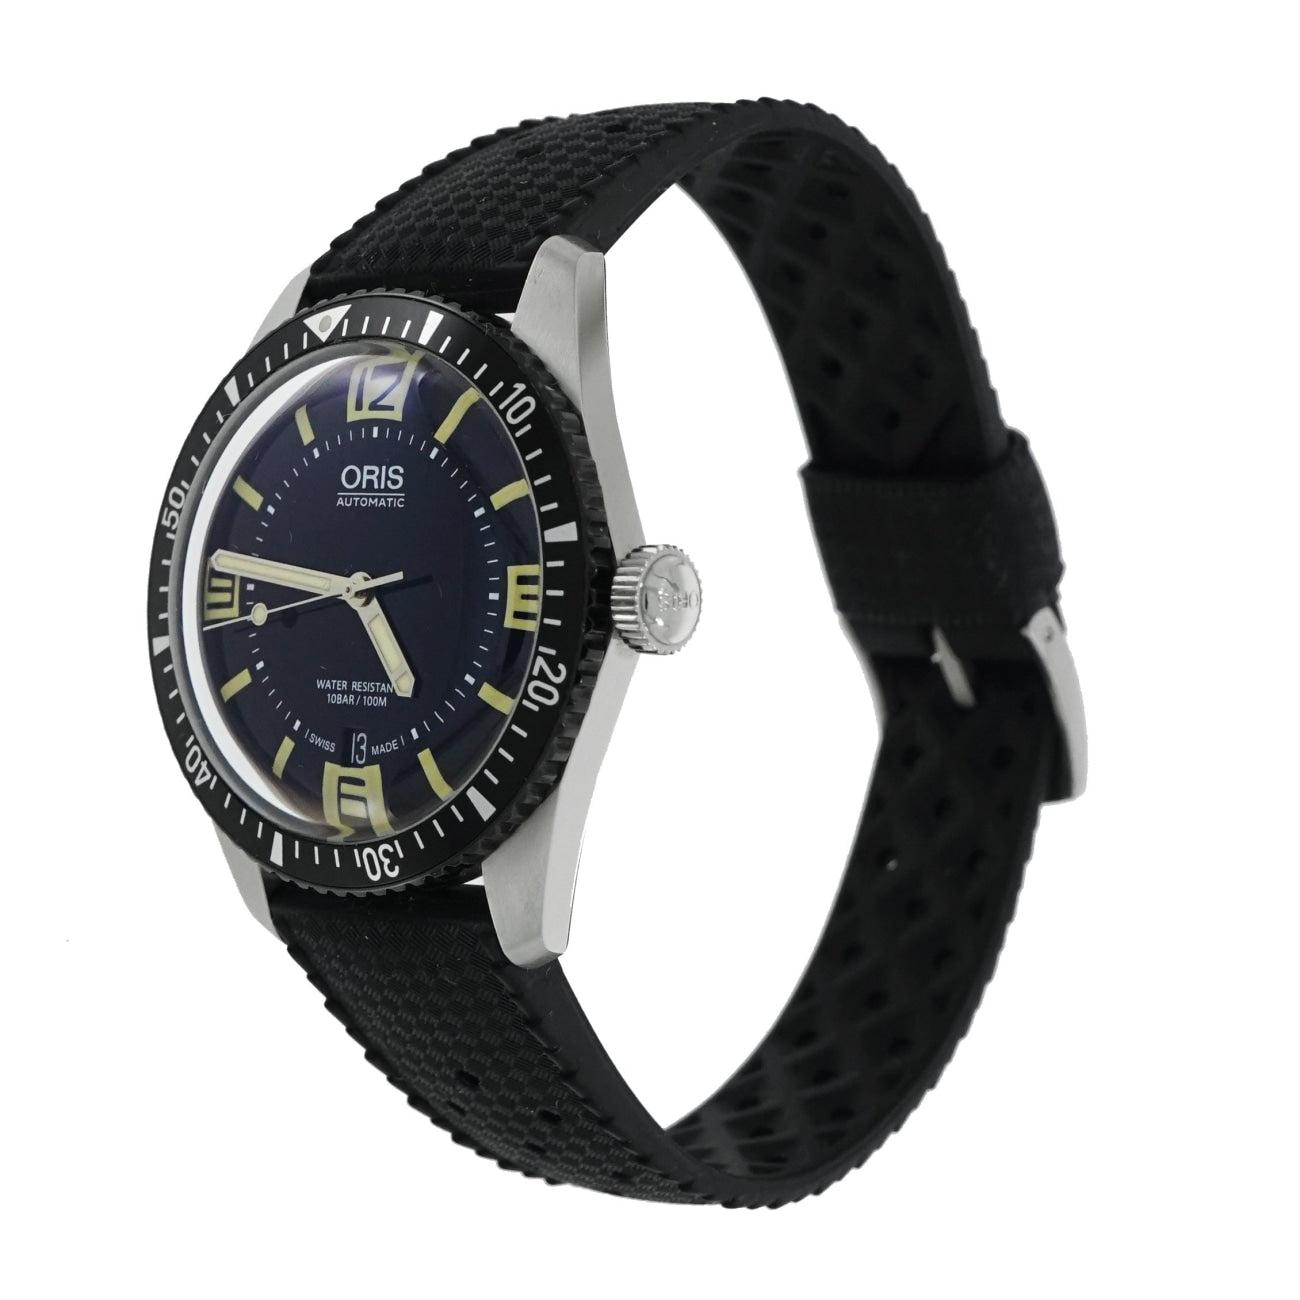 Pre-Owned ORIS Watches - Oris Divers Sixty-five Stainless Steel-0173377 | Manfredi Jewels